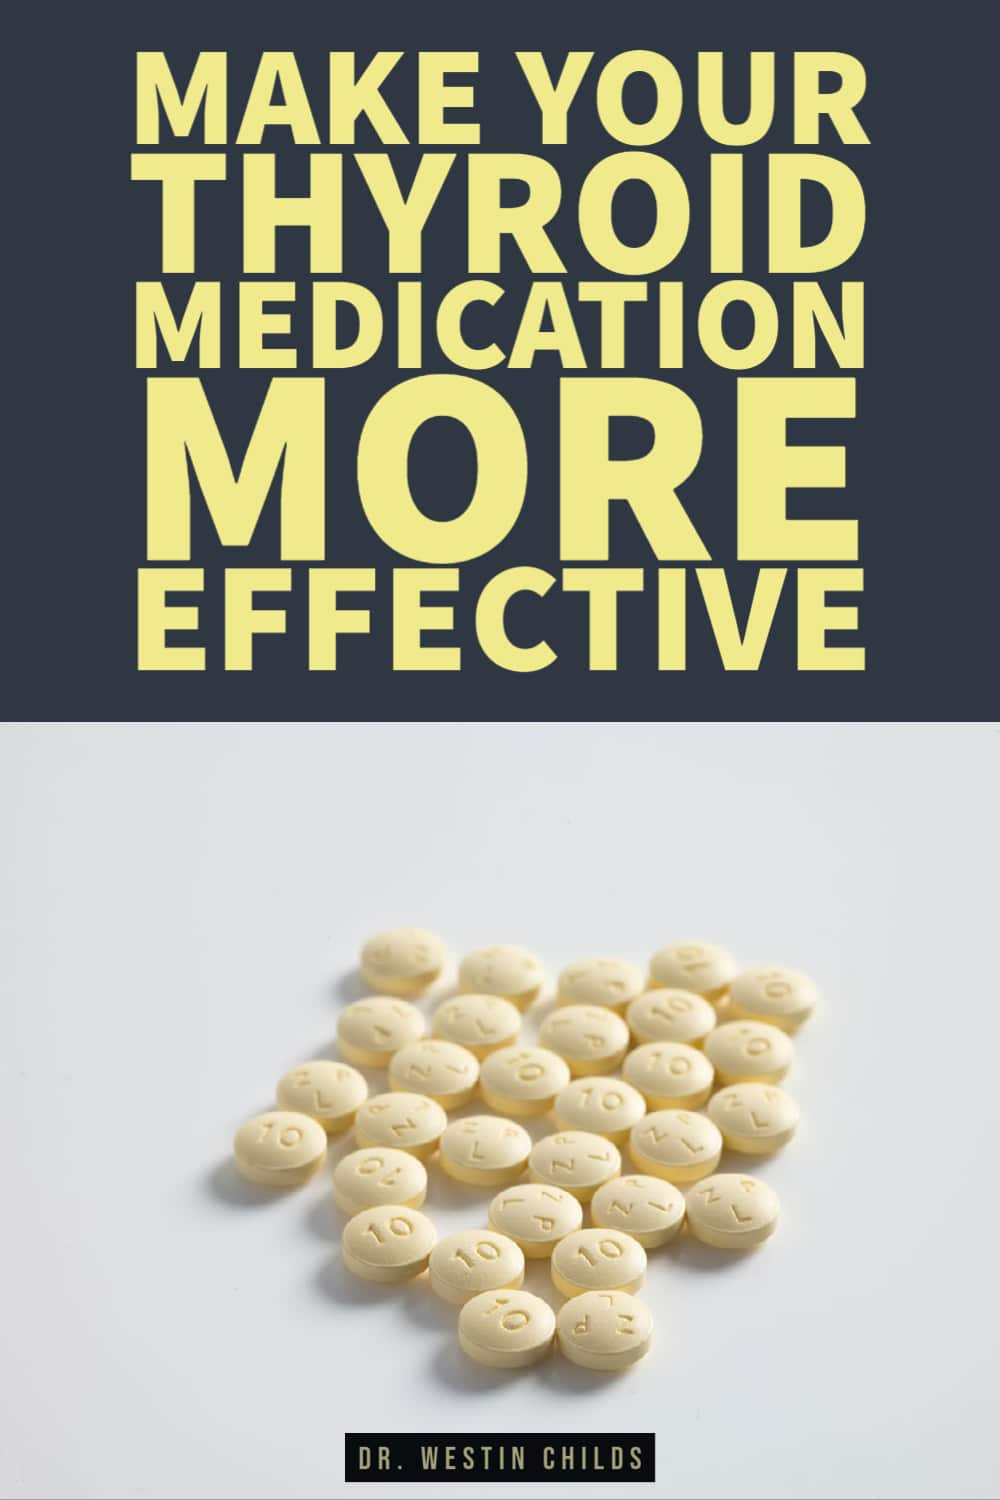 tips to make your thyroid medication more effective